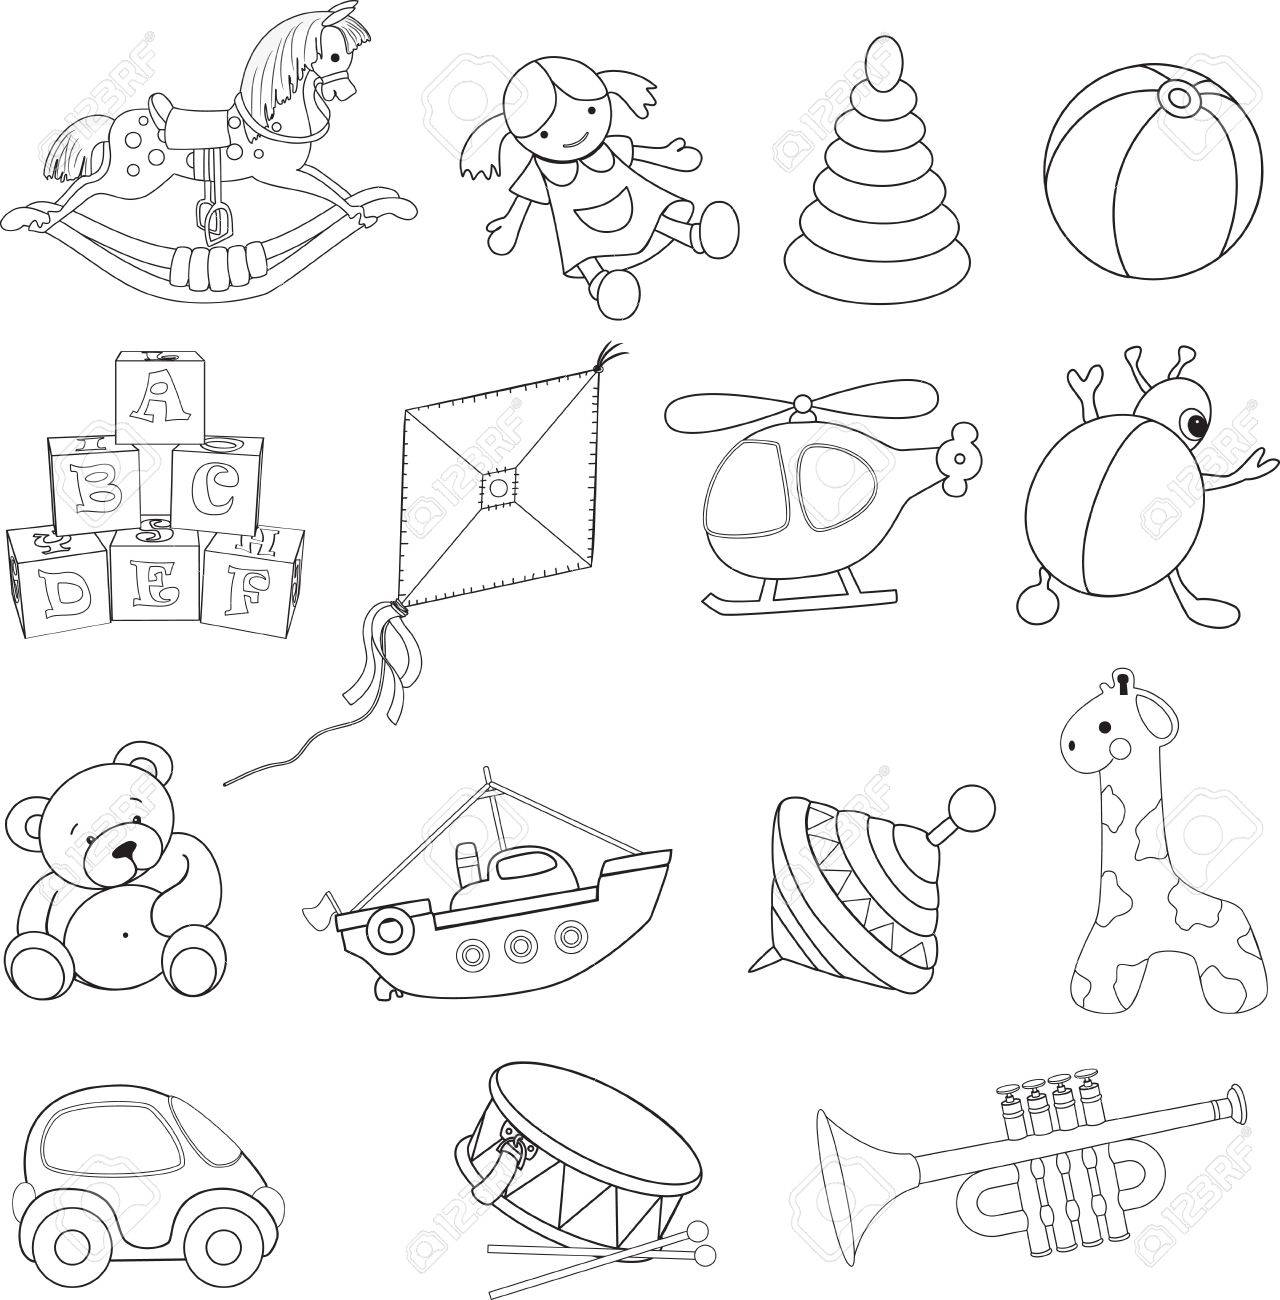 - Baby S Toys Coloring Book Illustration Royalty Free Cliparts